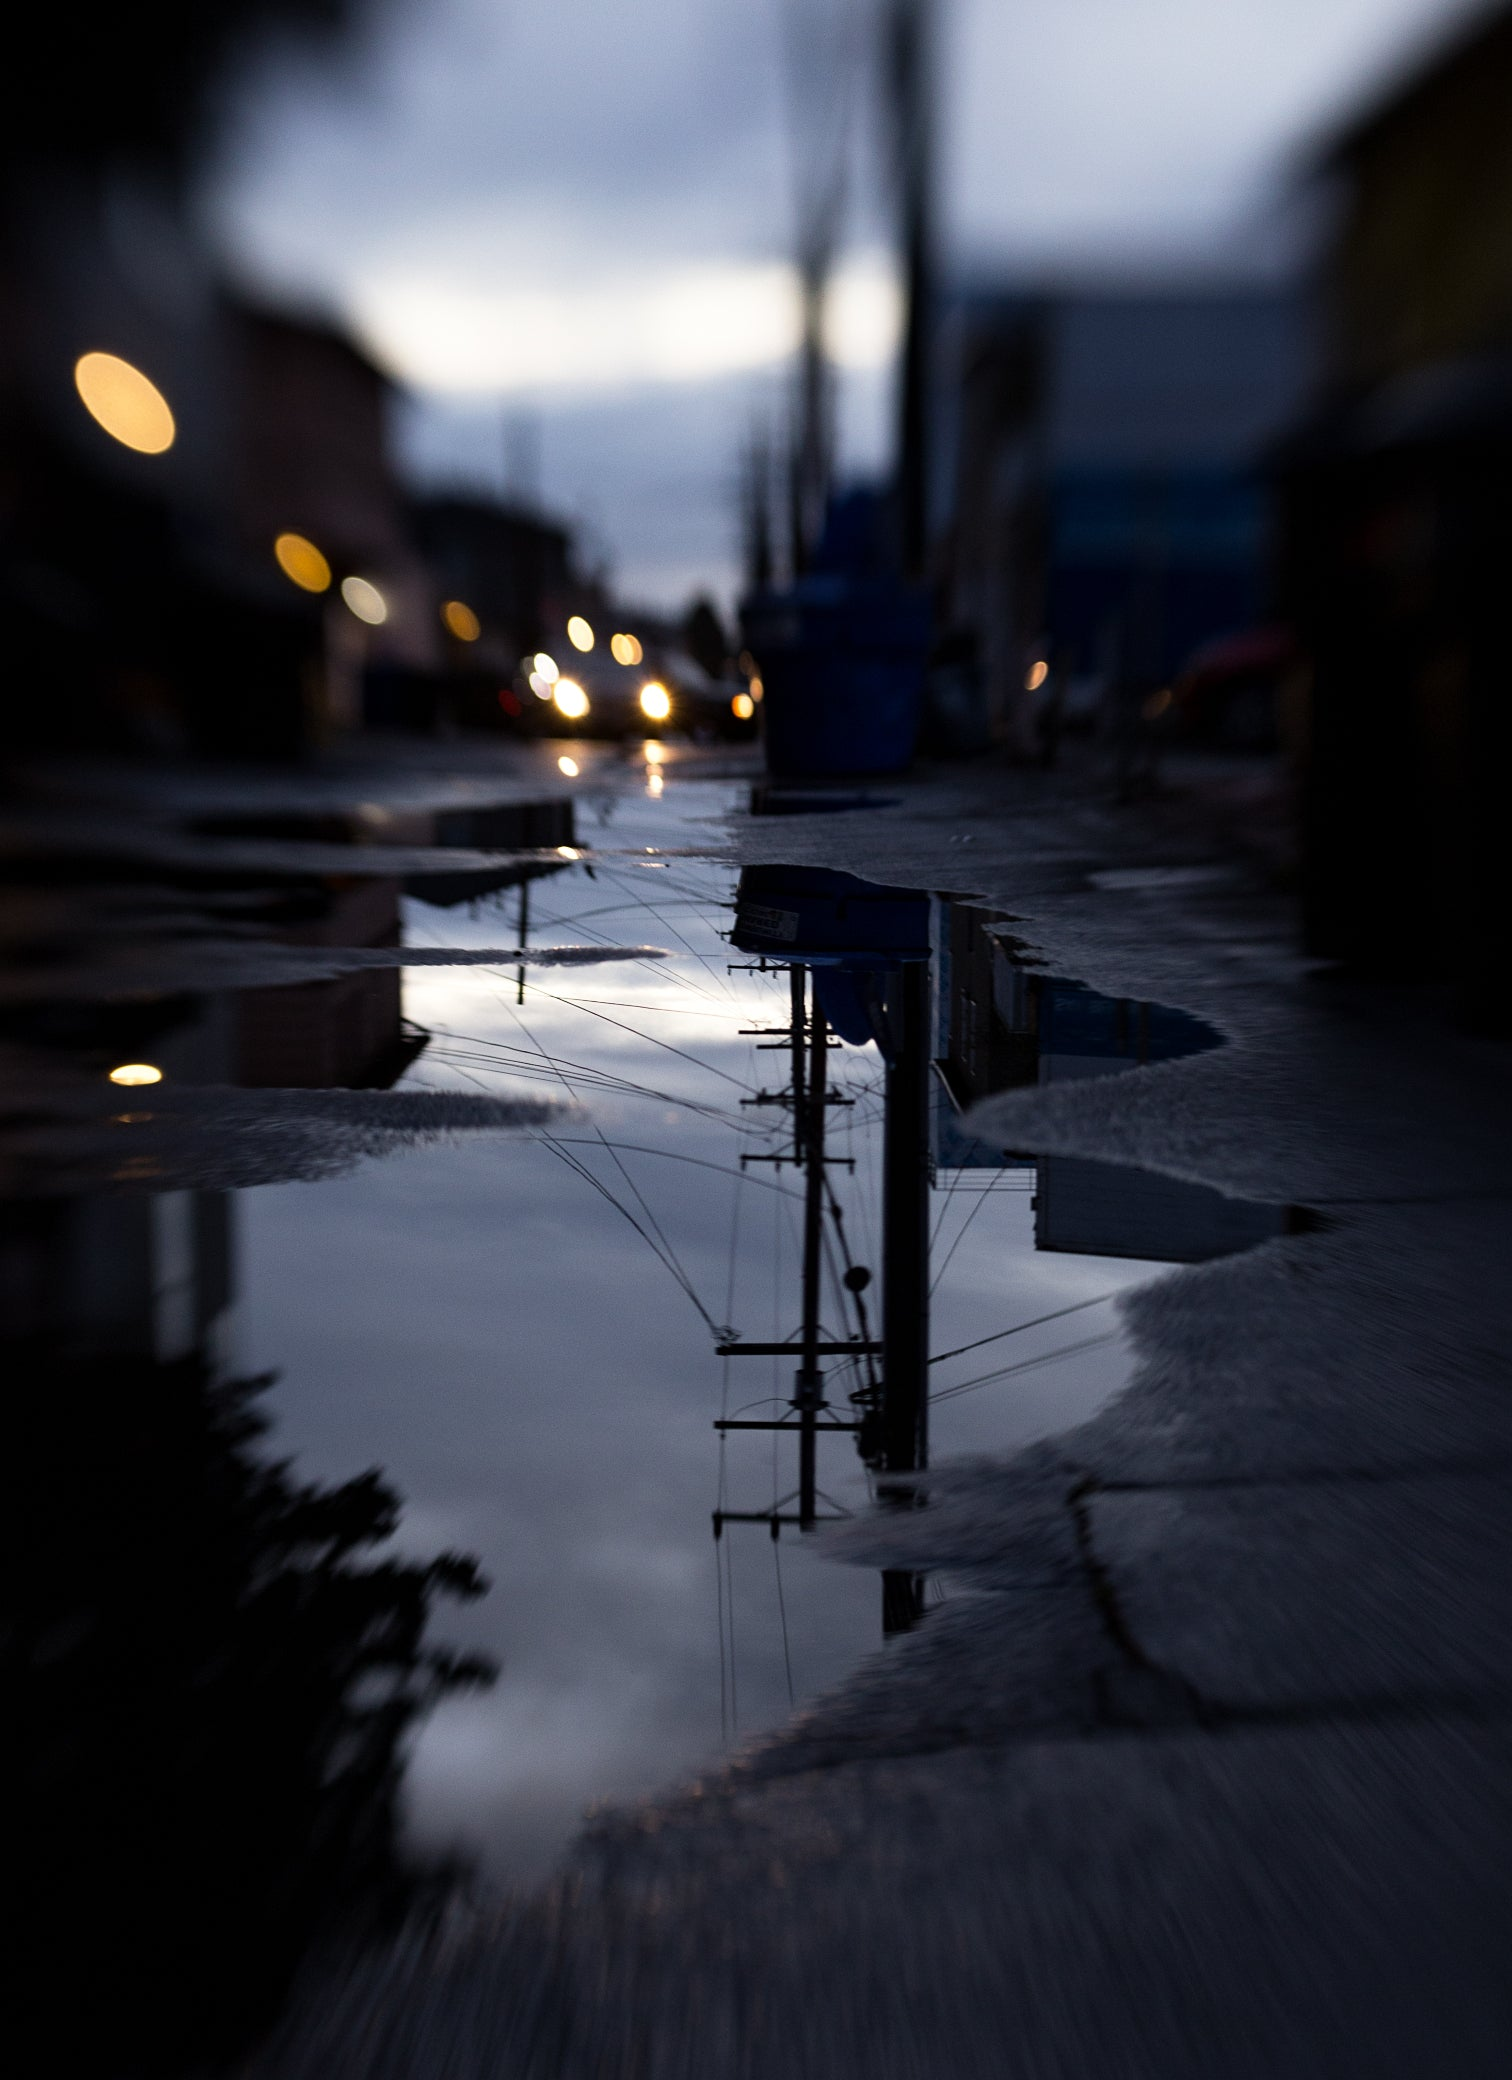 reflection of car lights in a puddle street photography at night dusk bokeh Lensbaby featured photos